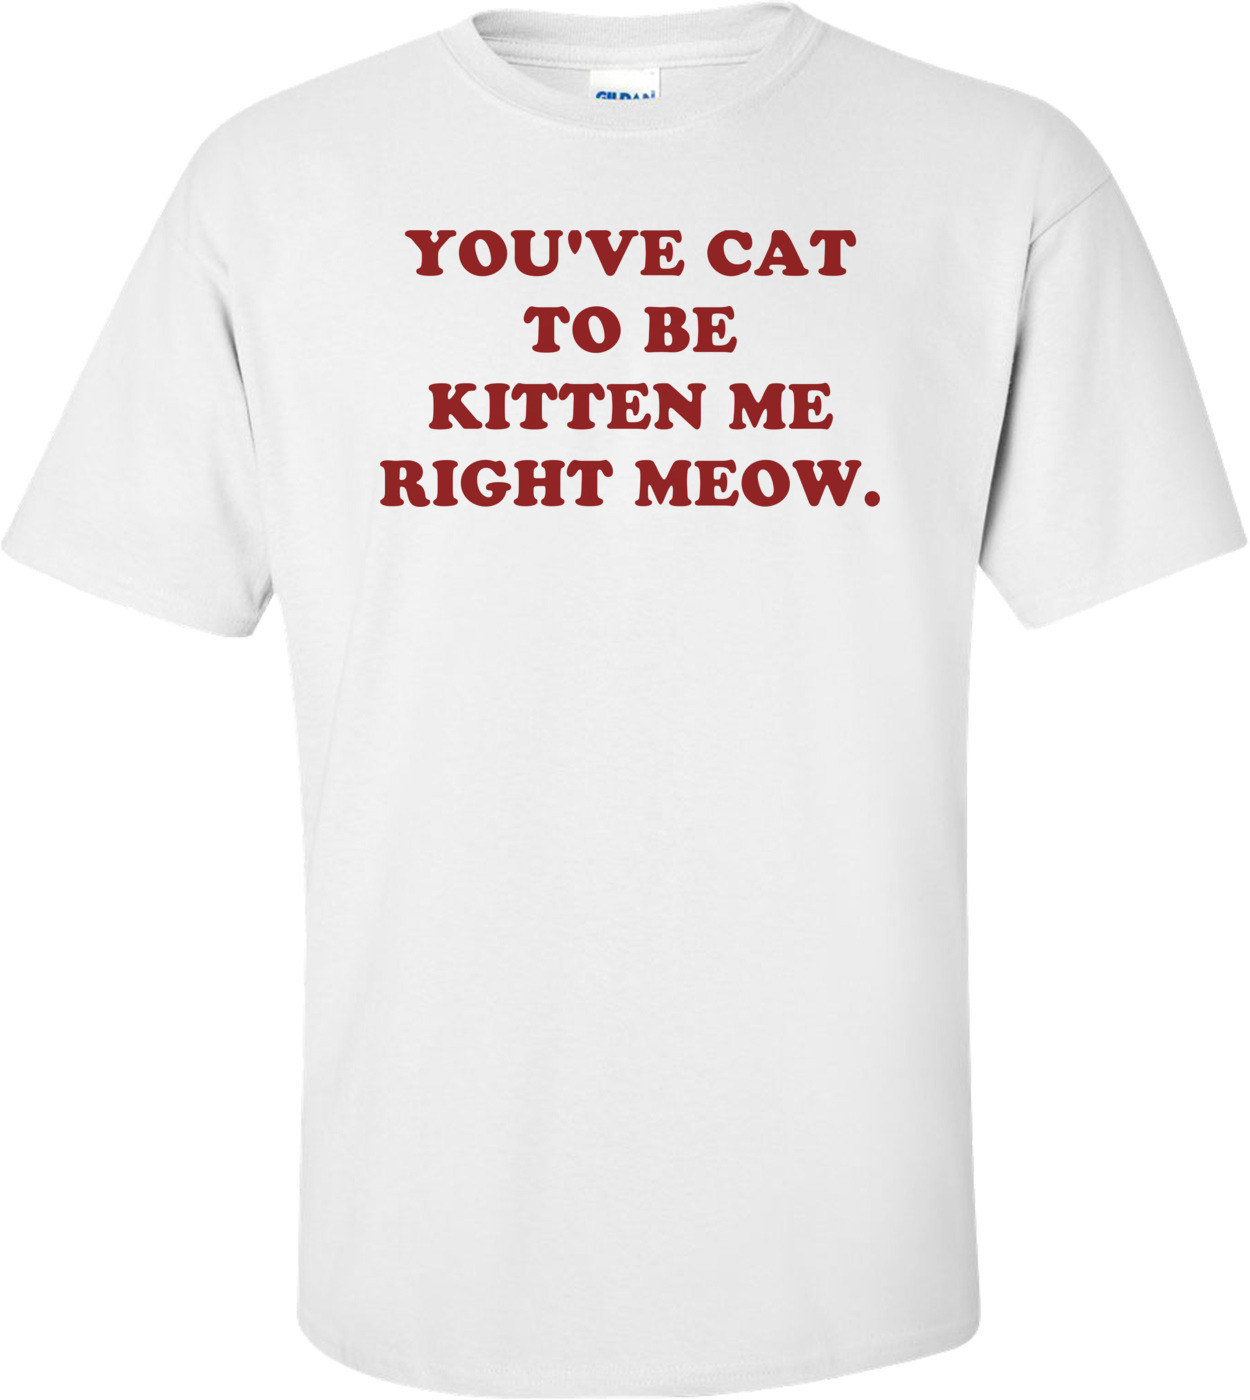 YOU'VE CAT TO BE KITTEN ME RIGHT MEOW. Shirt